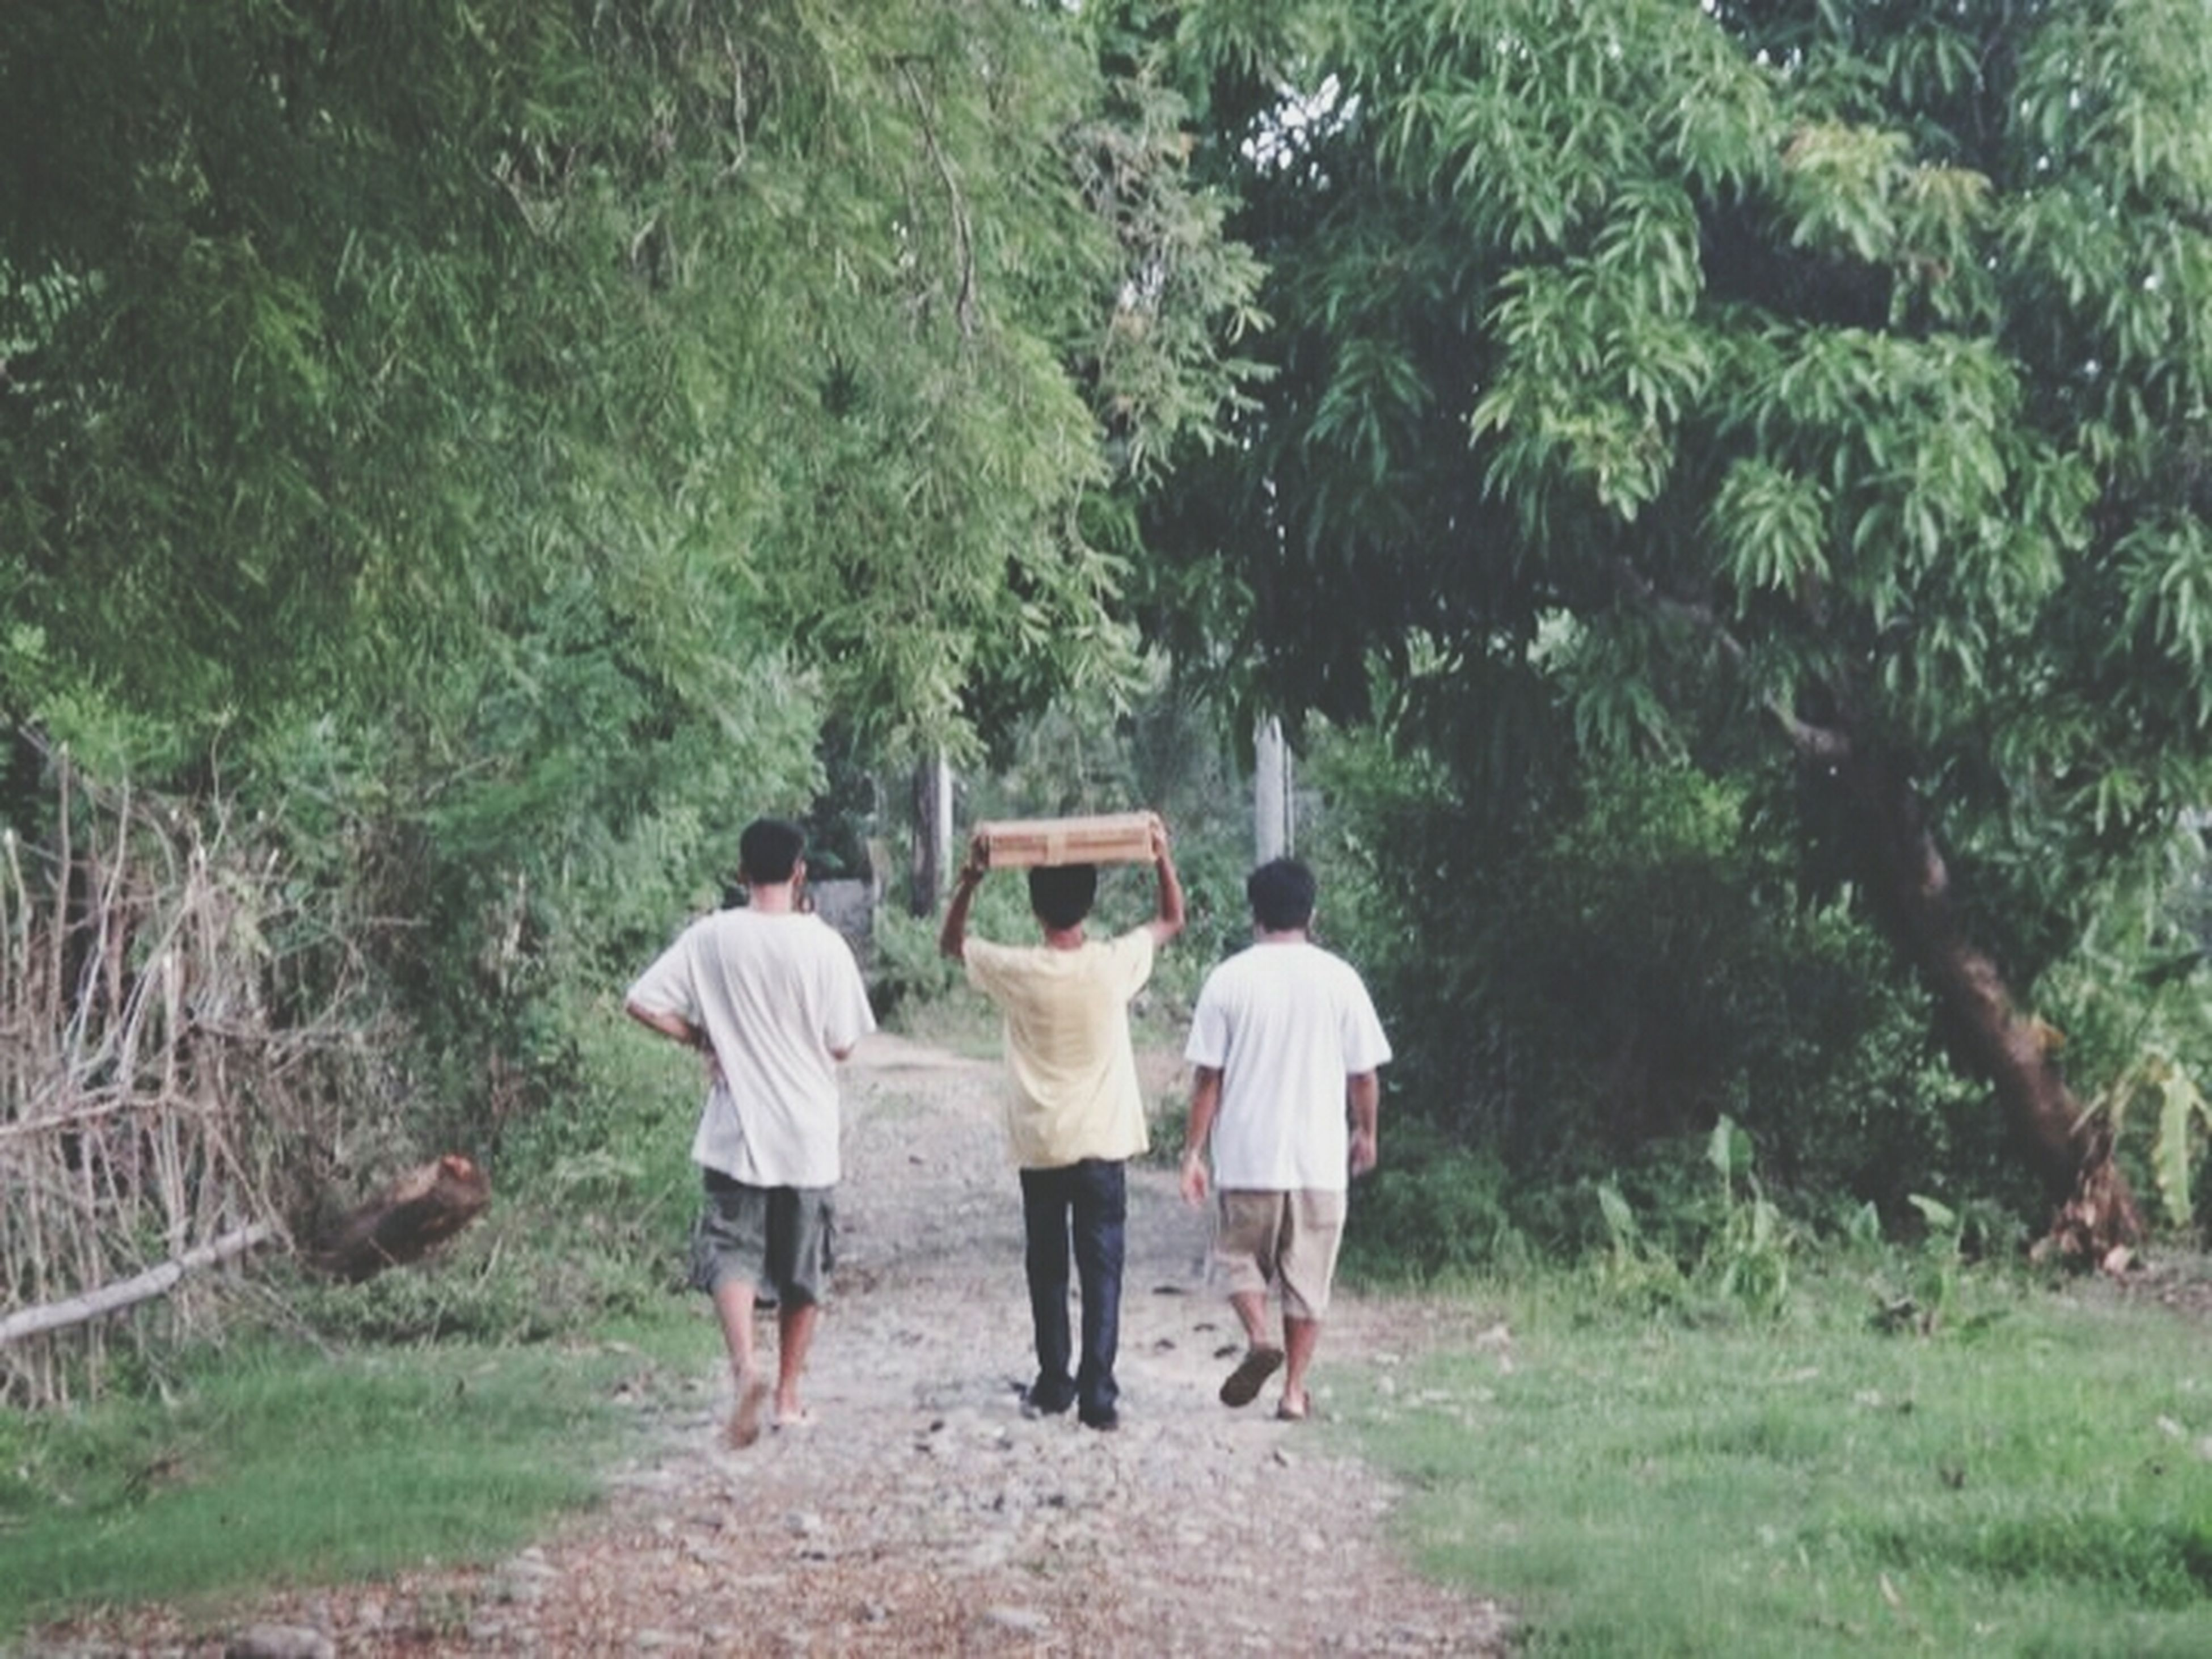 rear view, lifestyles, men, full length, togetherness, leisure activity, walking, person, bonding, casual clothing, tree, love, friendship, the way forward, holding hands, nature, growth